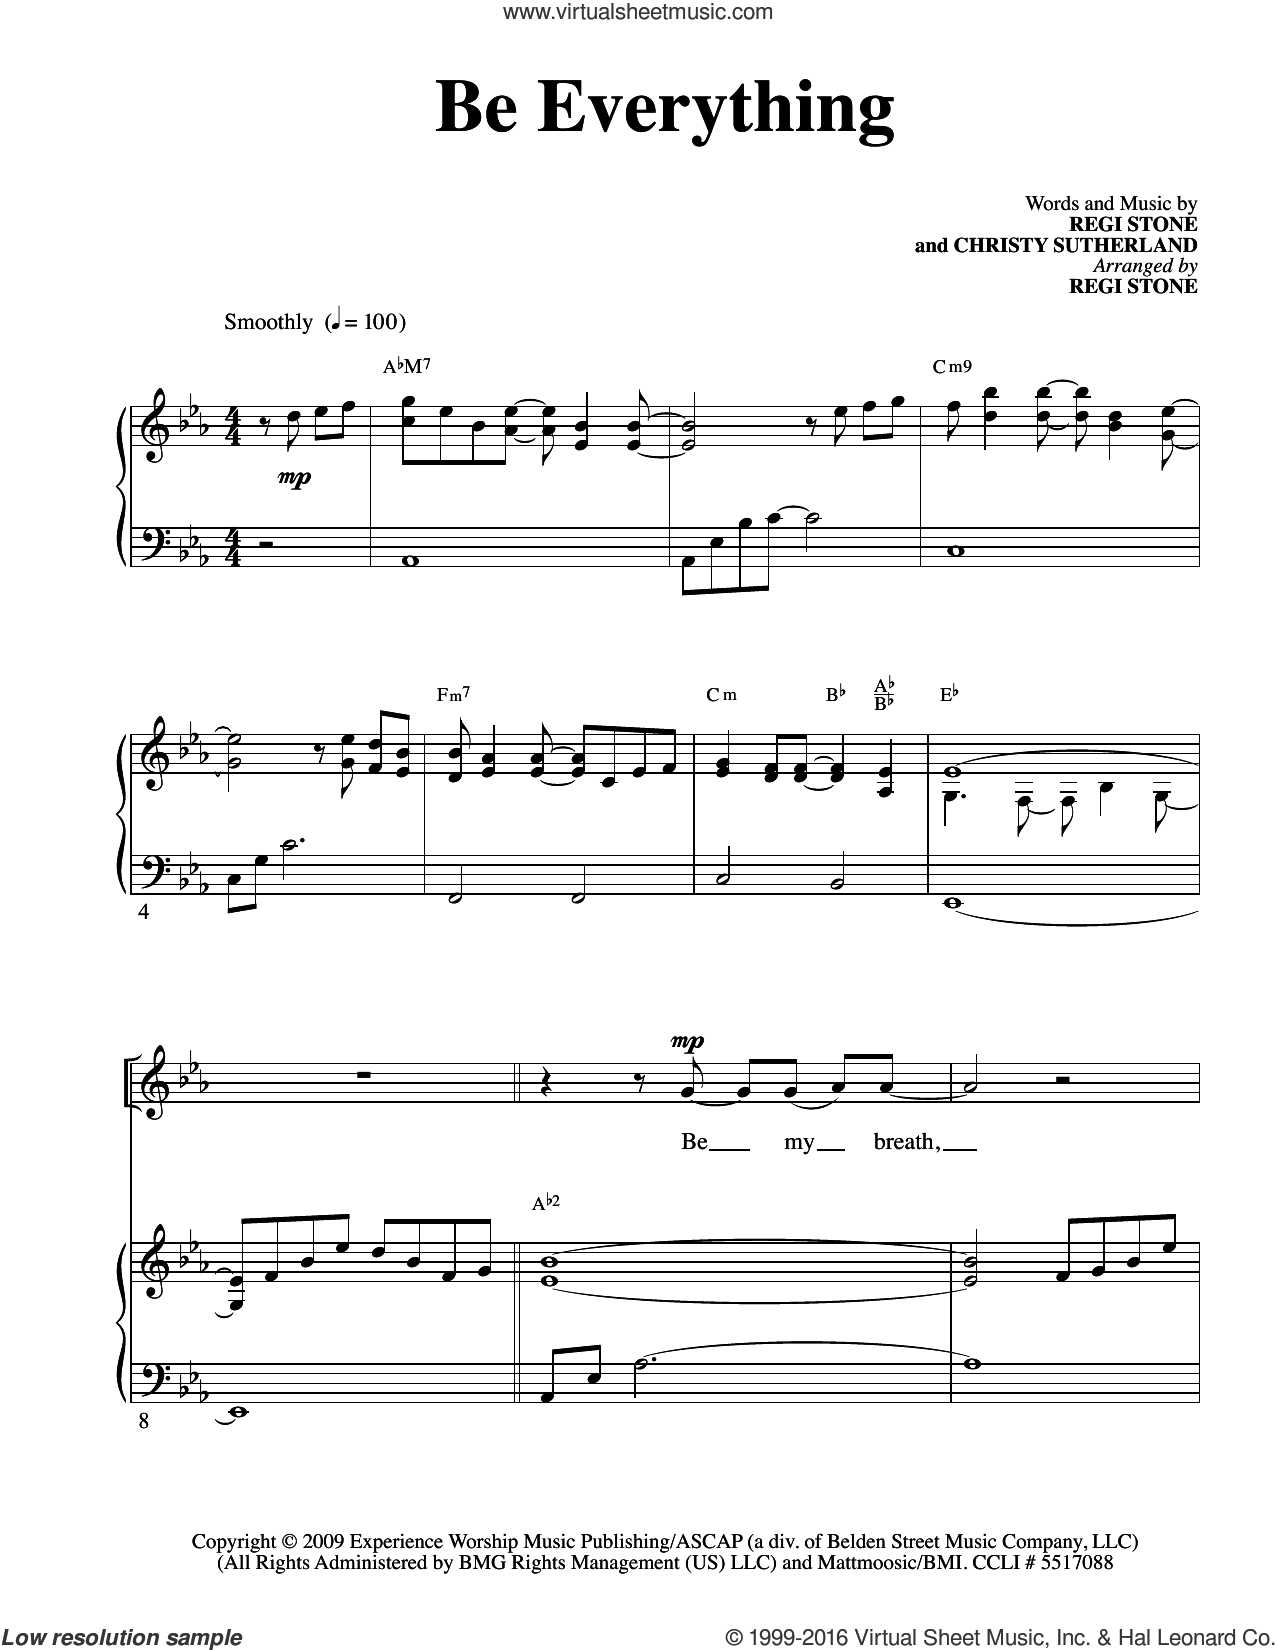 Be Everything sheet music for voice and piano by Christy Sutherland and Regi Stone. Score Image Preview.